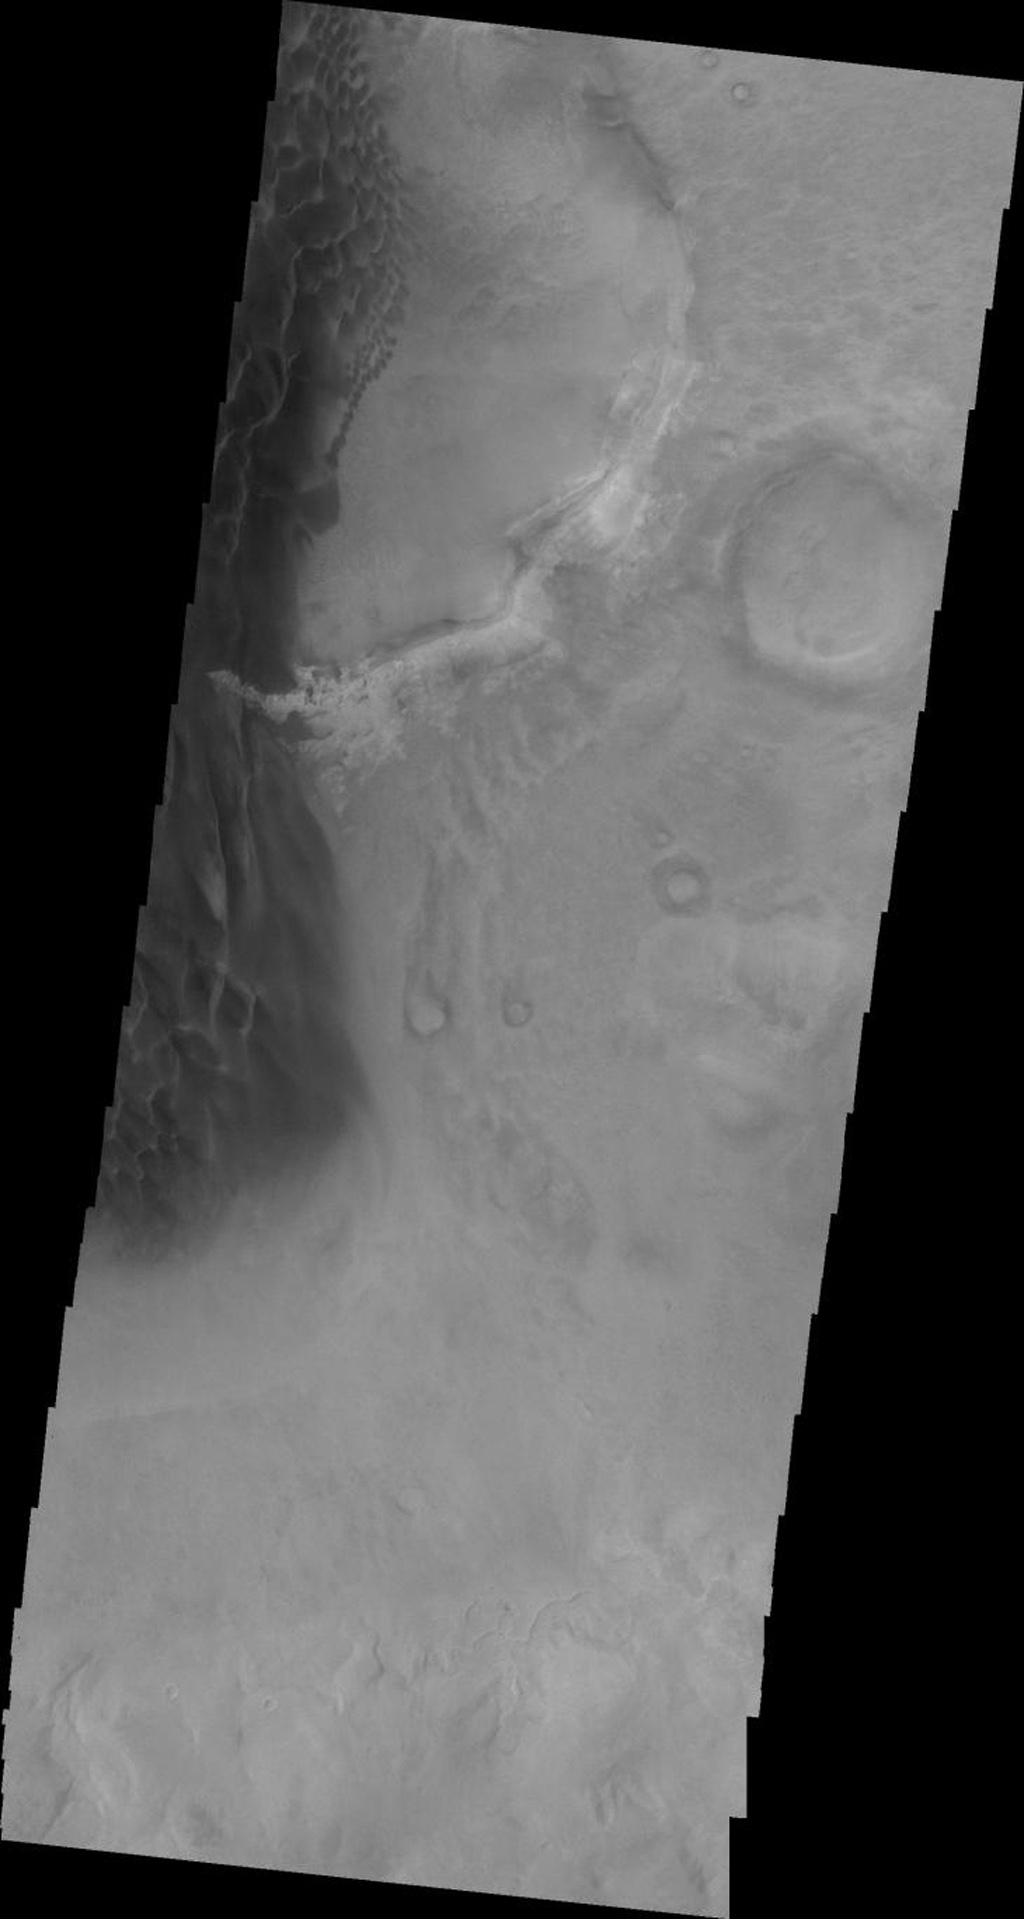 This 2001 Mars Odyssey image shows the eastern margin of the sand sheet and dune field on the floor of Rabe Crater on Mars.